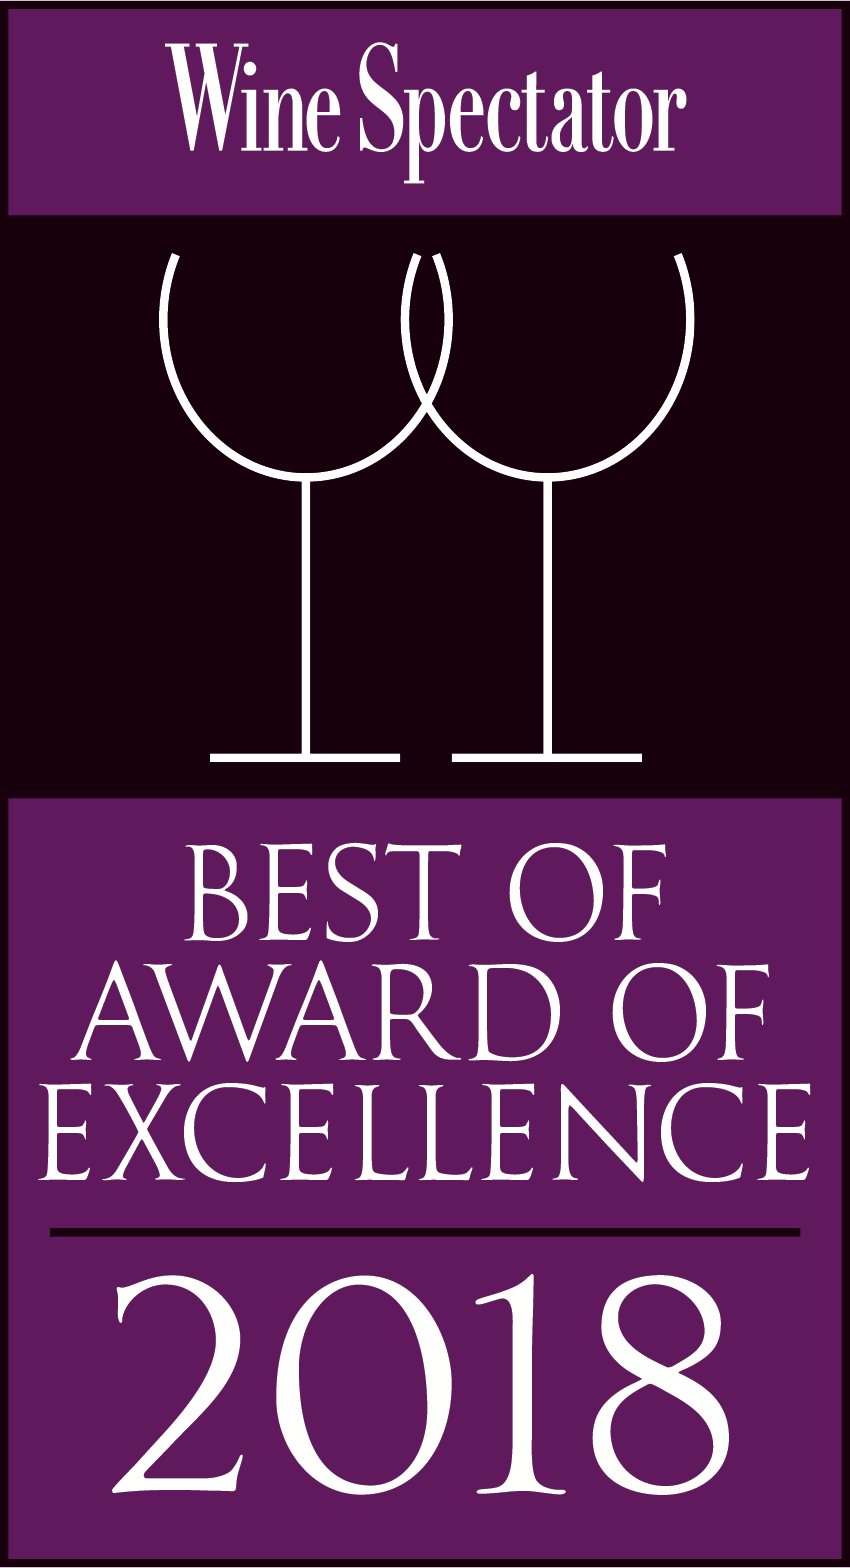 2018 Best of Excellence Award